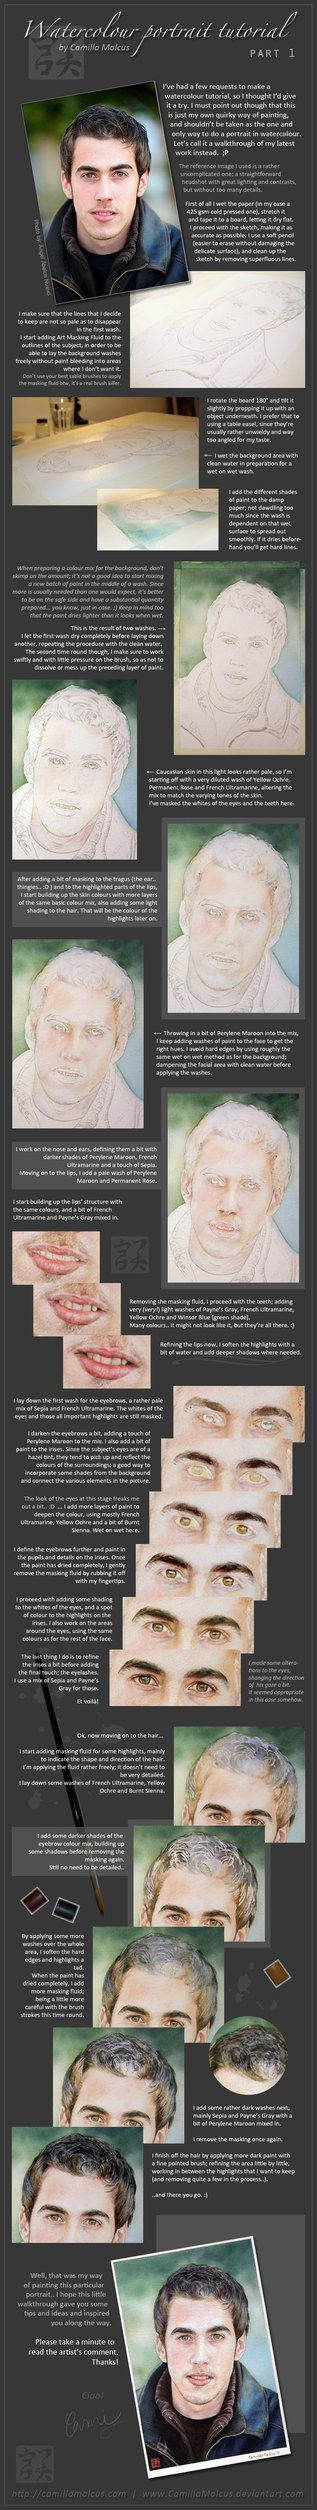 Great step-by-step on just how to paint great watercolour portraits.